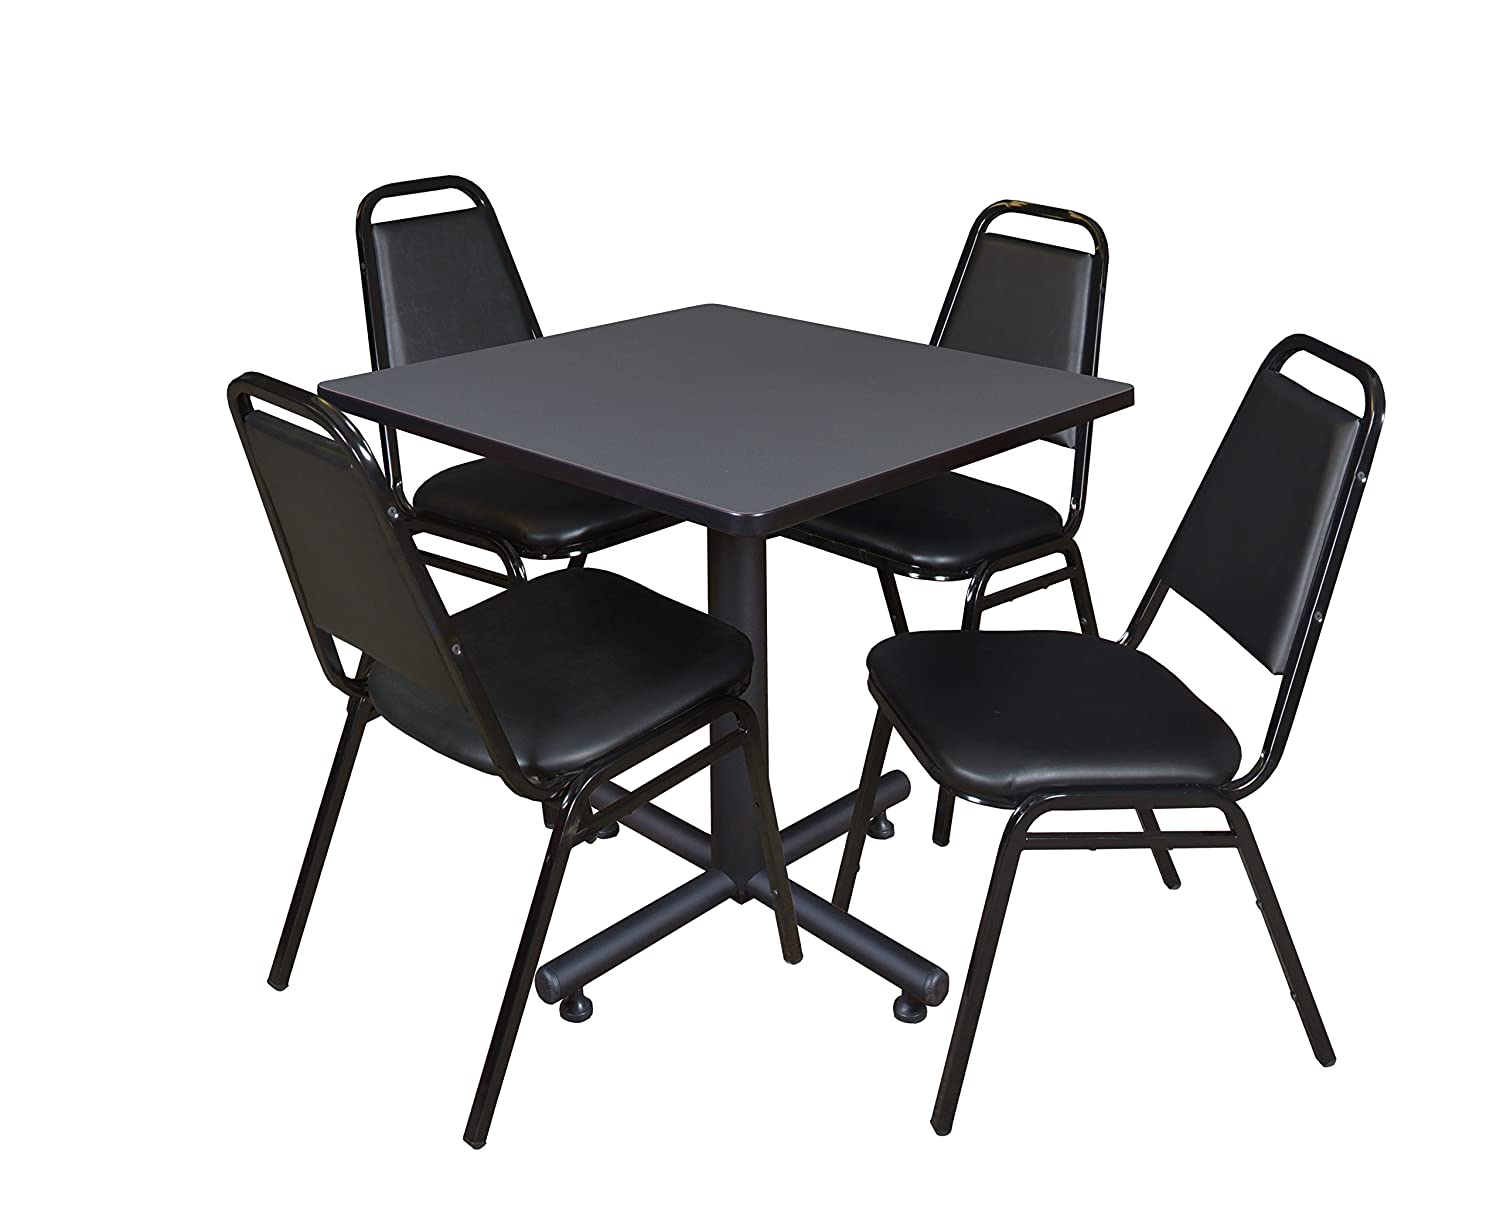 Mahogany and 4 Restaurant Stack Chairs Regency Kobe 36-Inch Square Breakroom Table Black